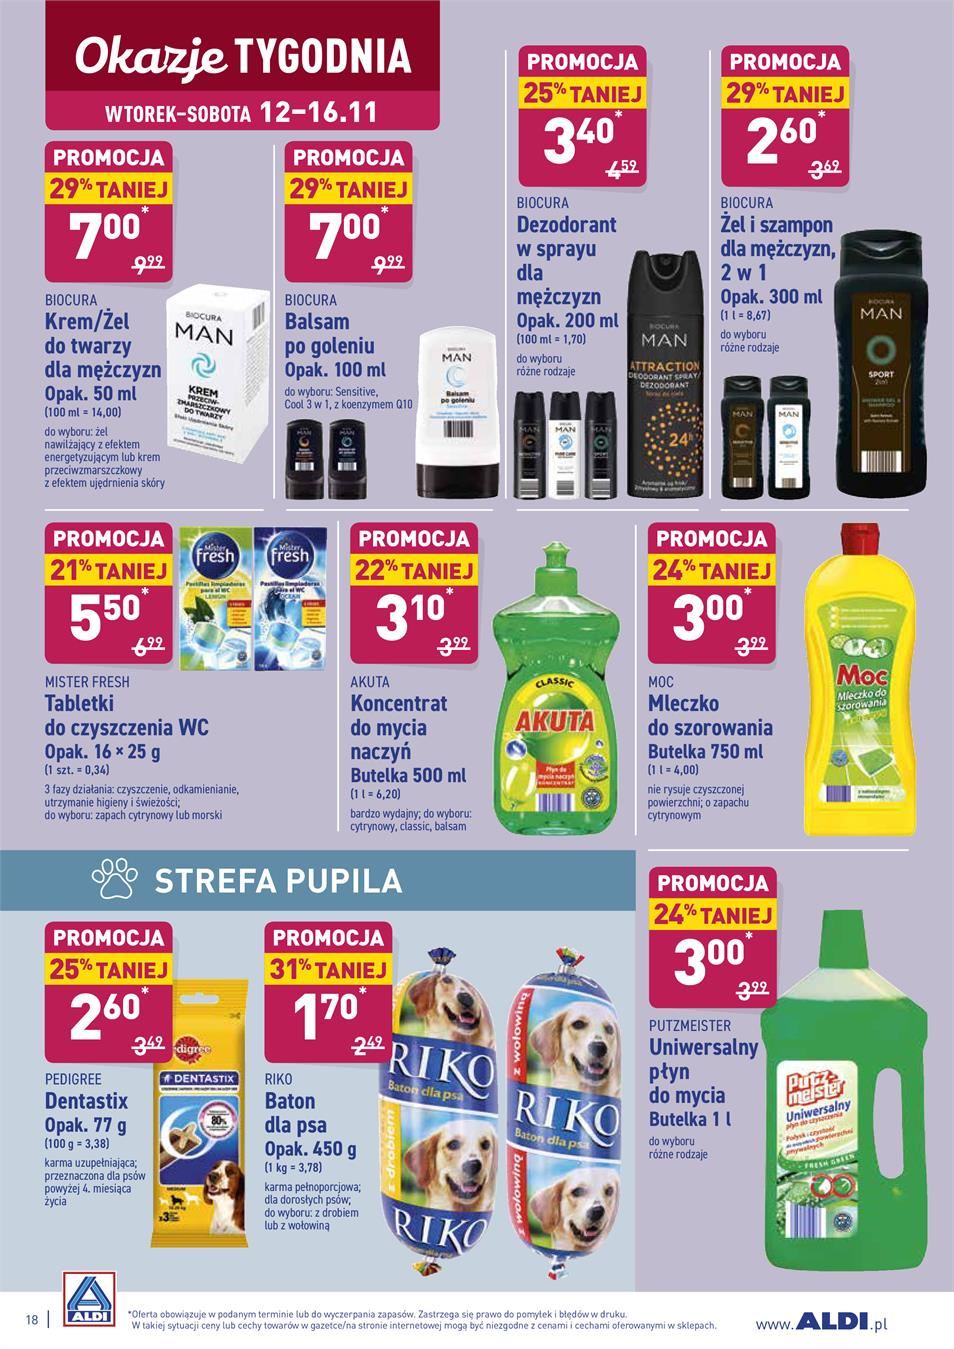 Gazetka ALDI SP Z O O  nr 18 od 2019-11-12 do 2019-11-16